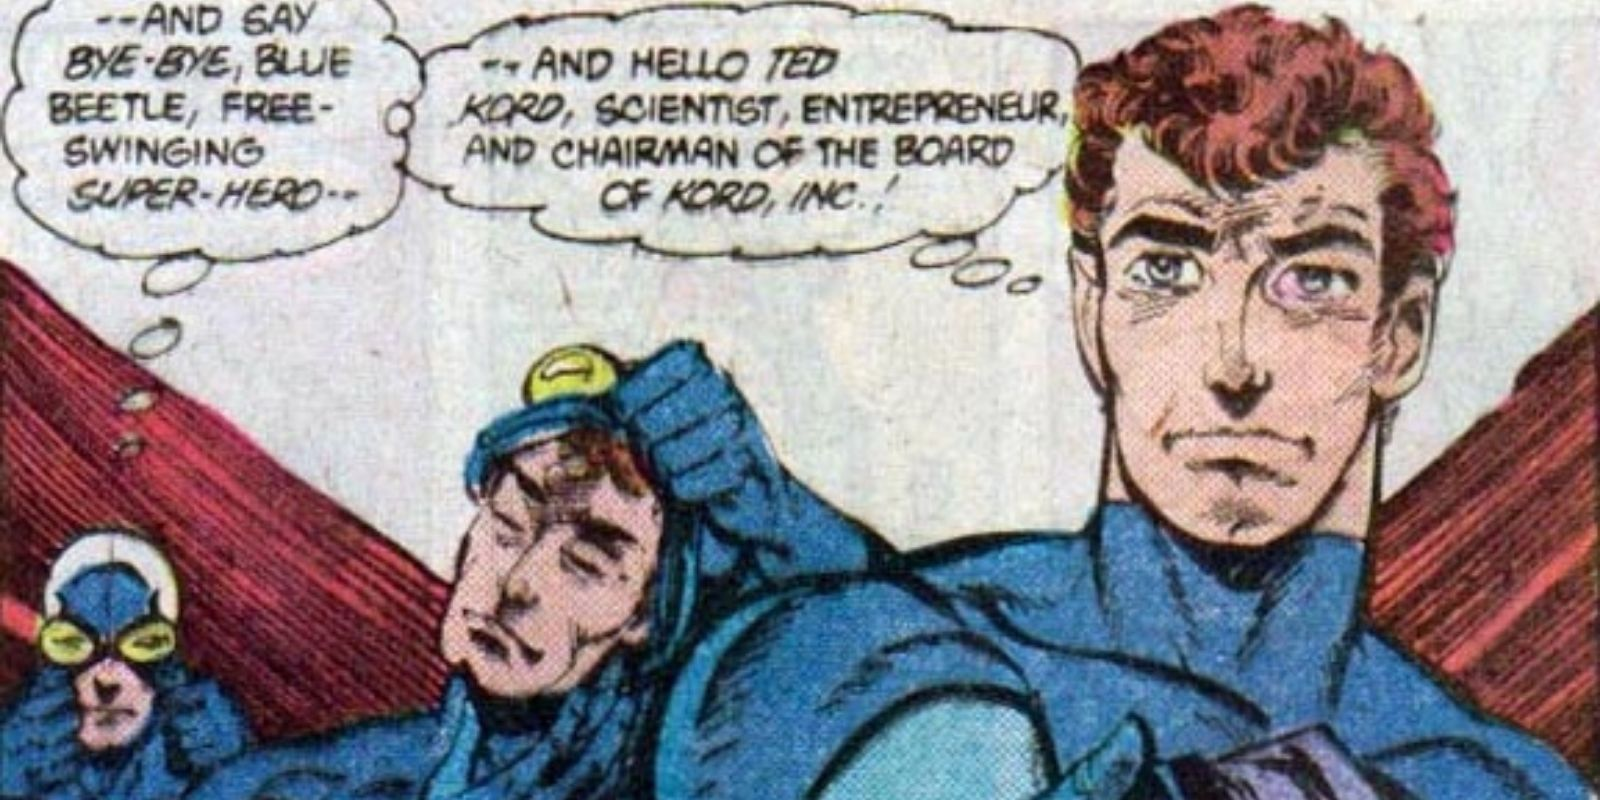 Ted Kord (Blue Beetle)